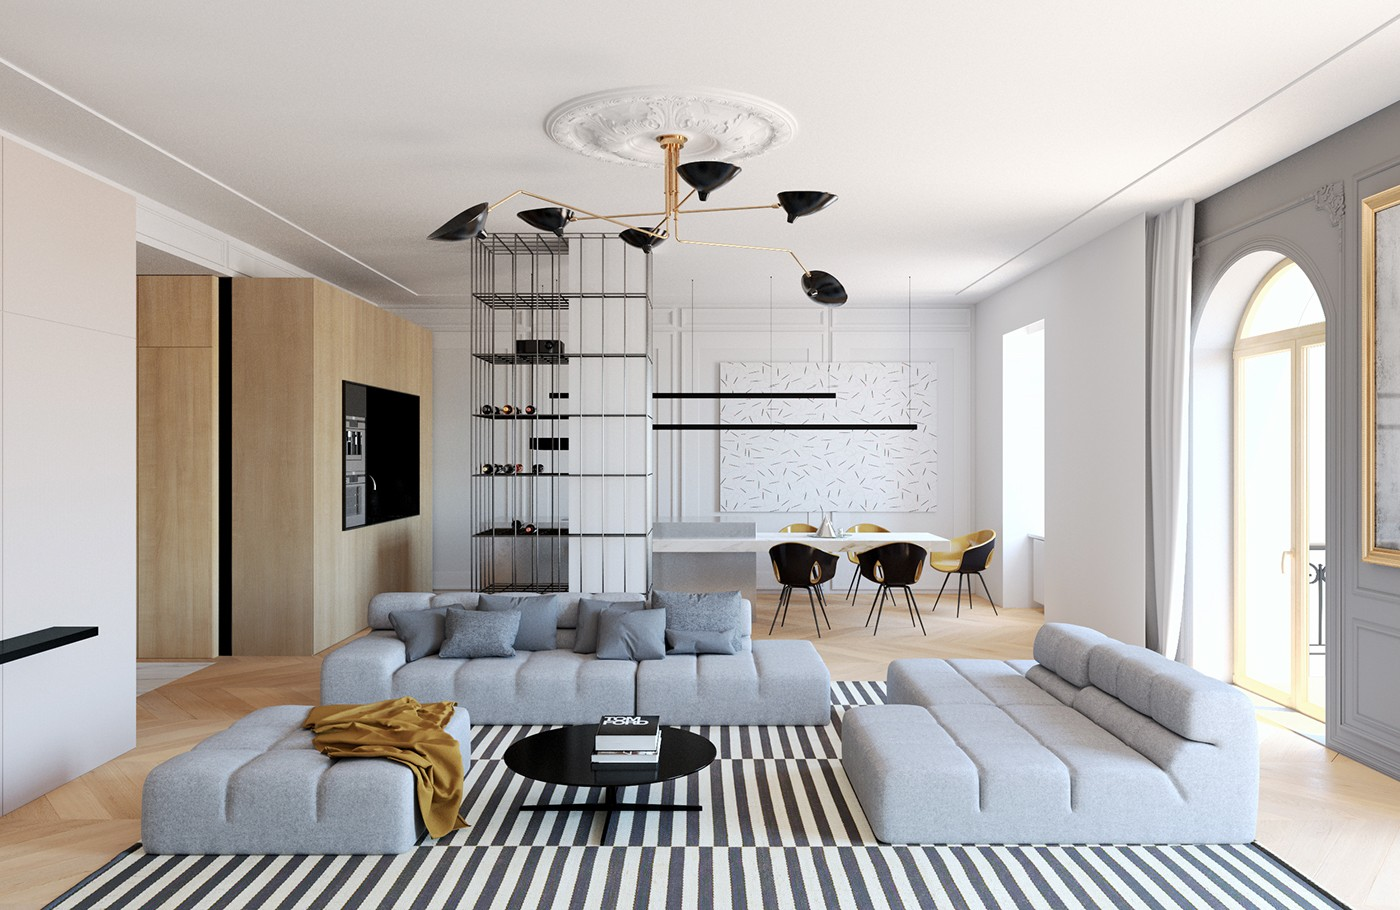 How to arrange a trendy minimalist home design with modern and stylish concept decor which looks - Design house decor ...